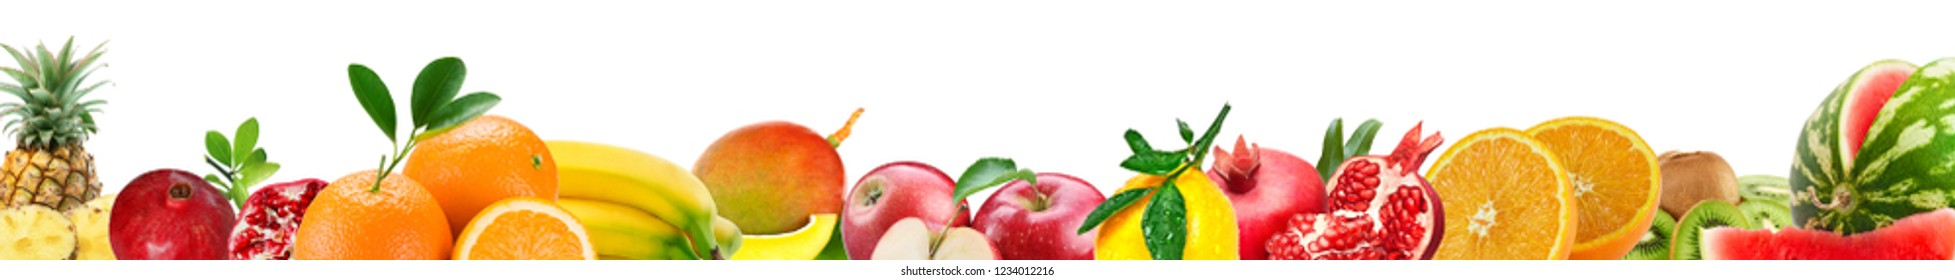 Fruit at the bottom on a white background.